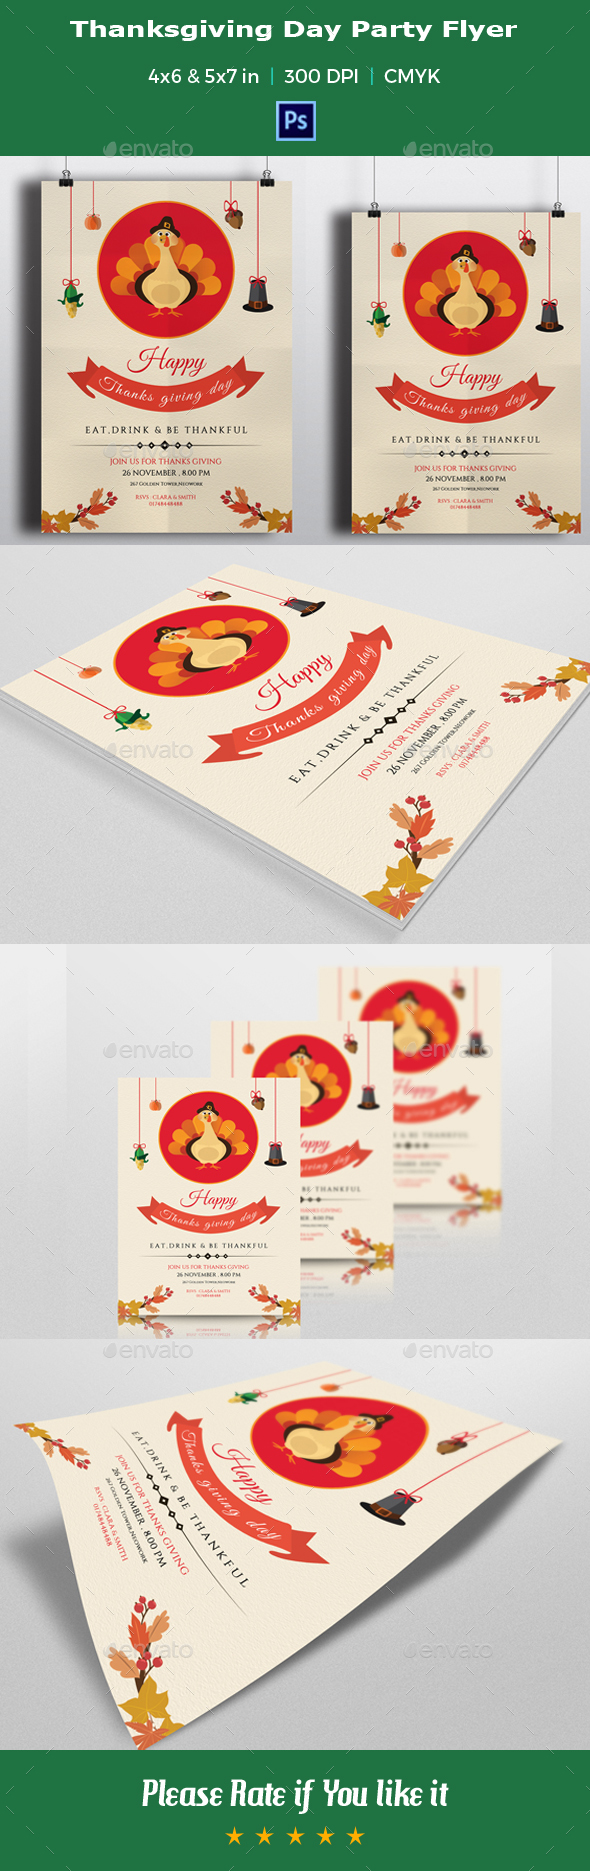 Thanksgiving Day Party Flyer Template-V02 - Events Flyers